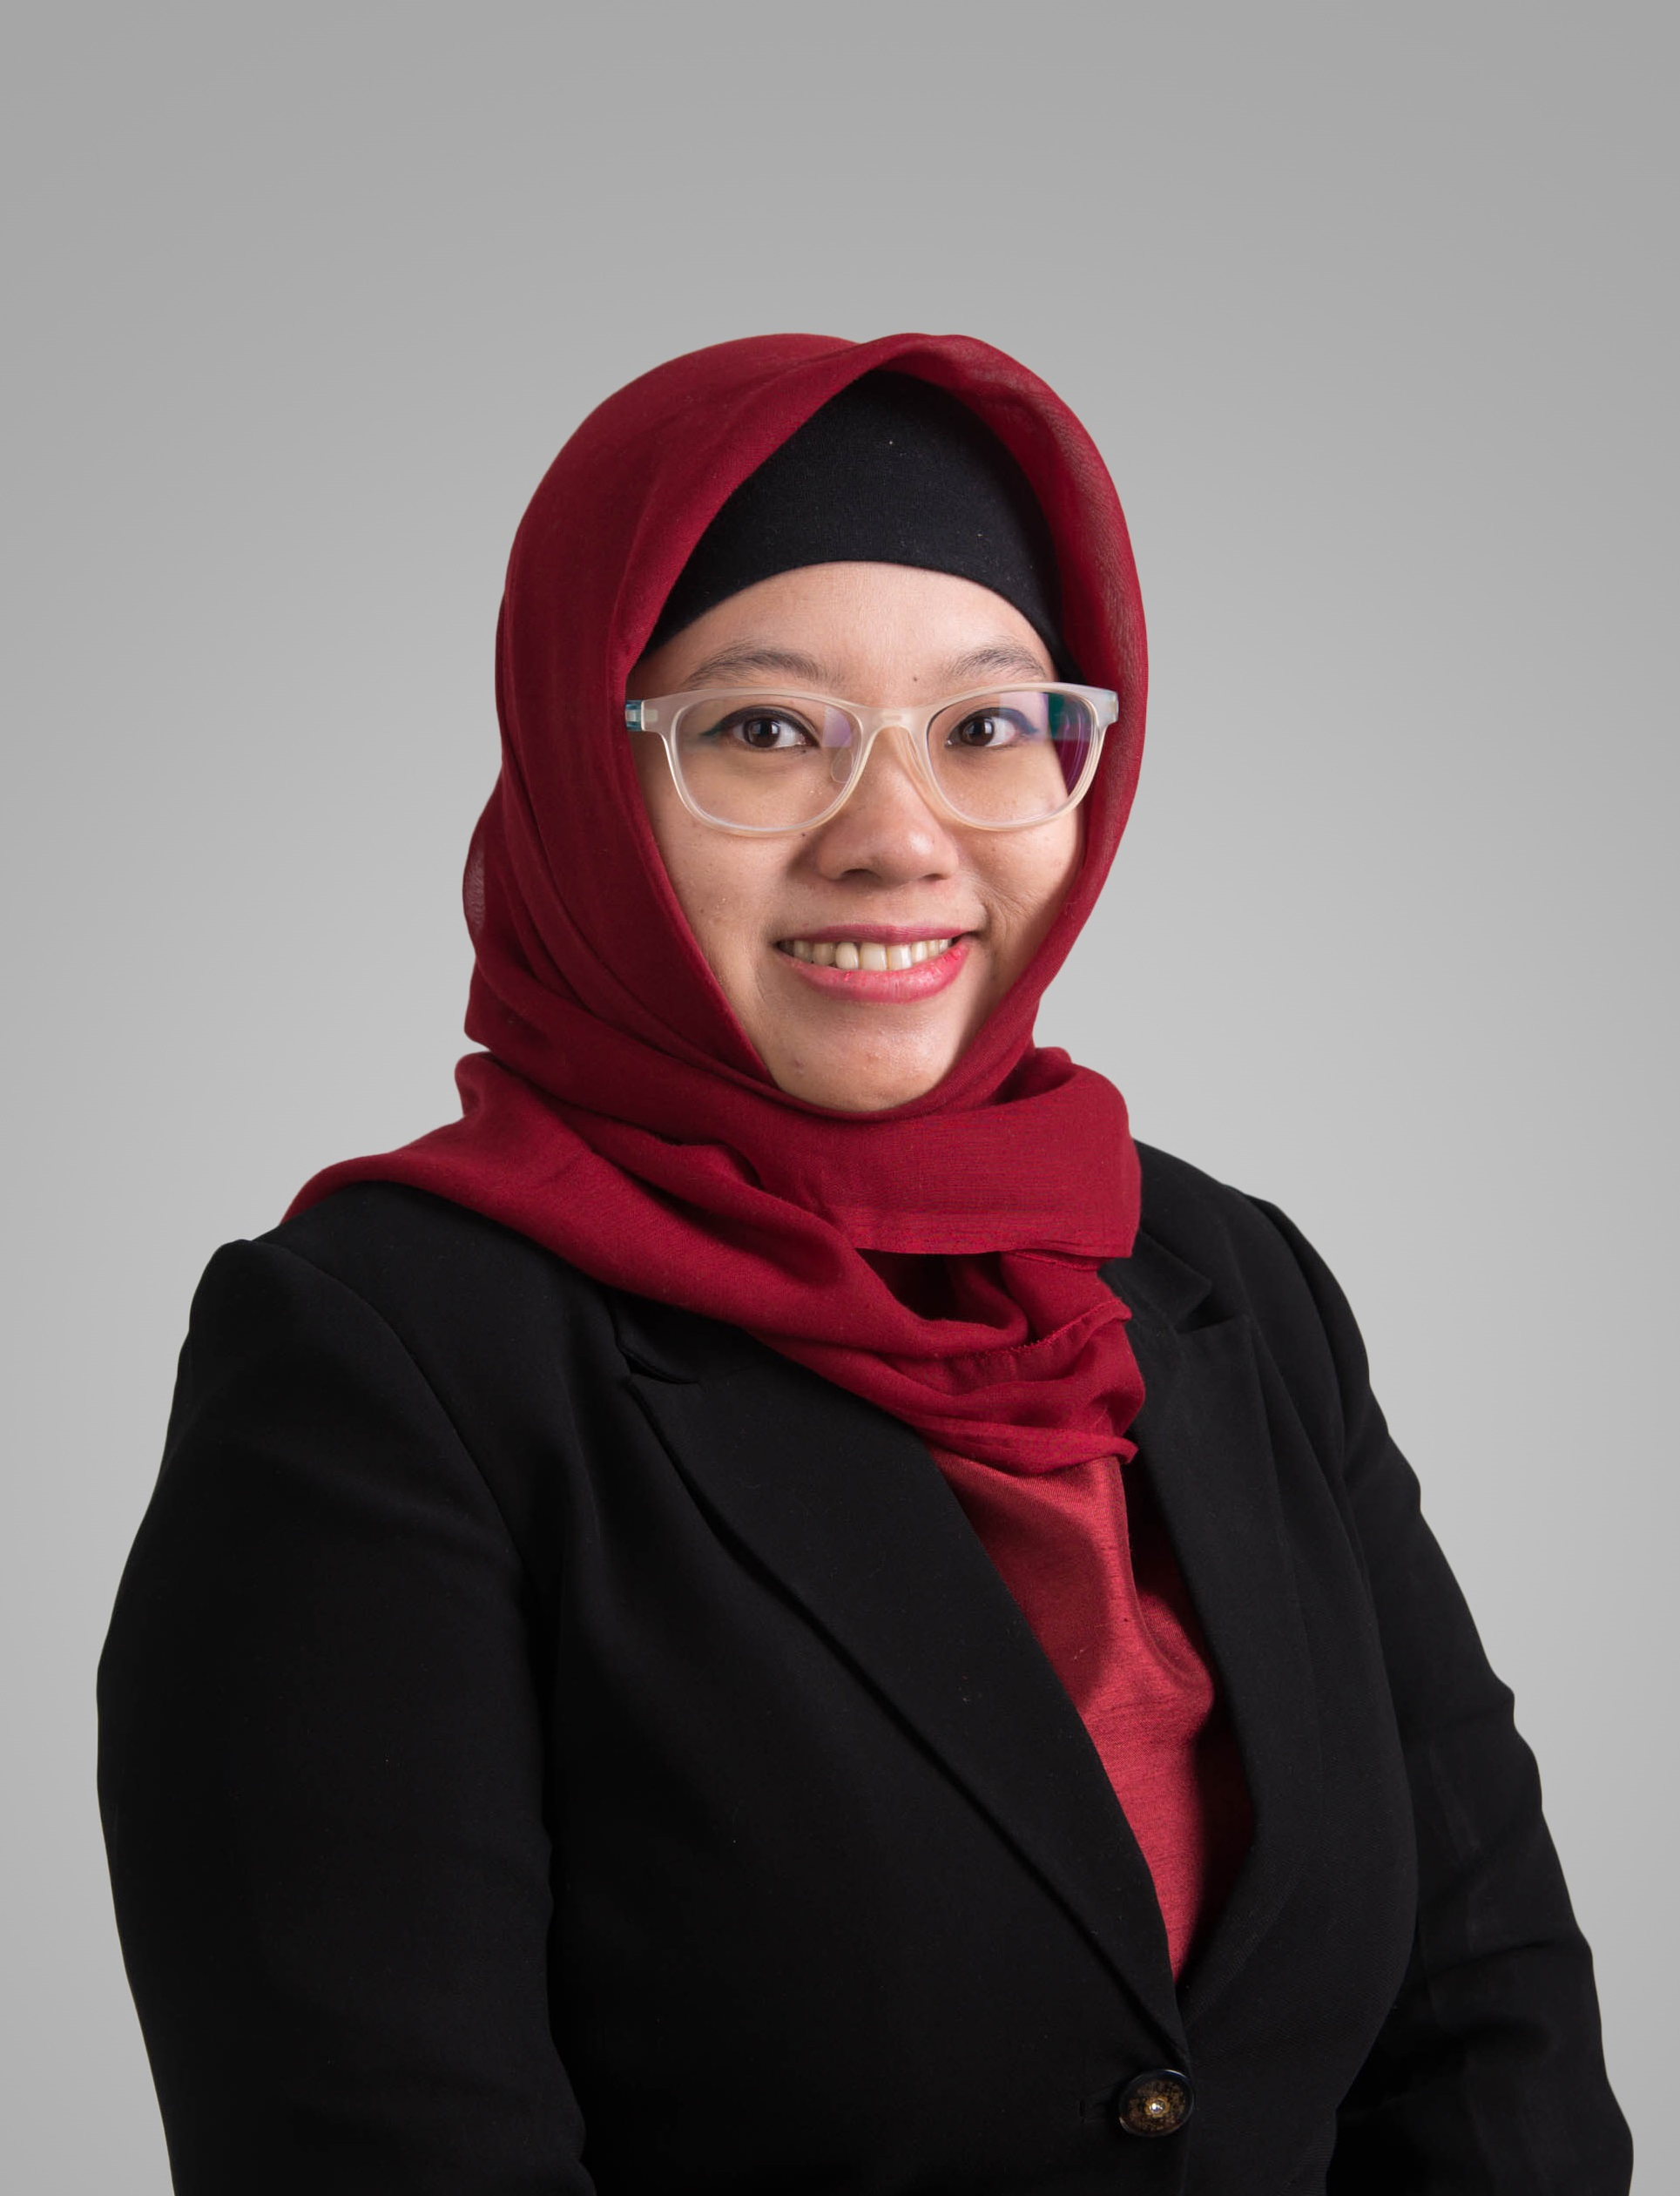 Fitriani Lubis - 2017 World Council for Gifted and Talented Children World Conference - Sydney, Australia